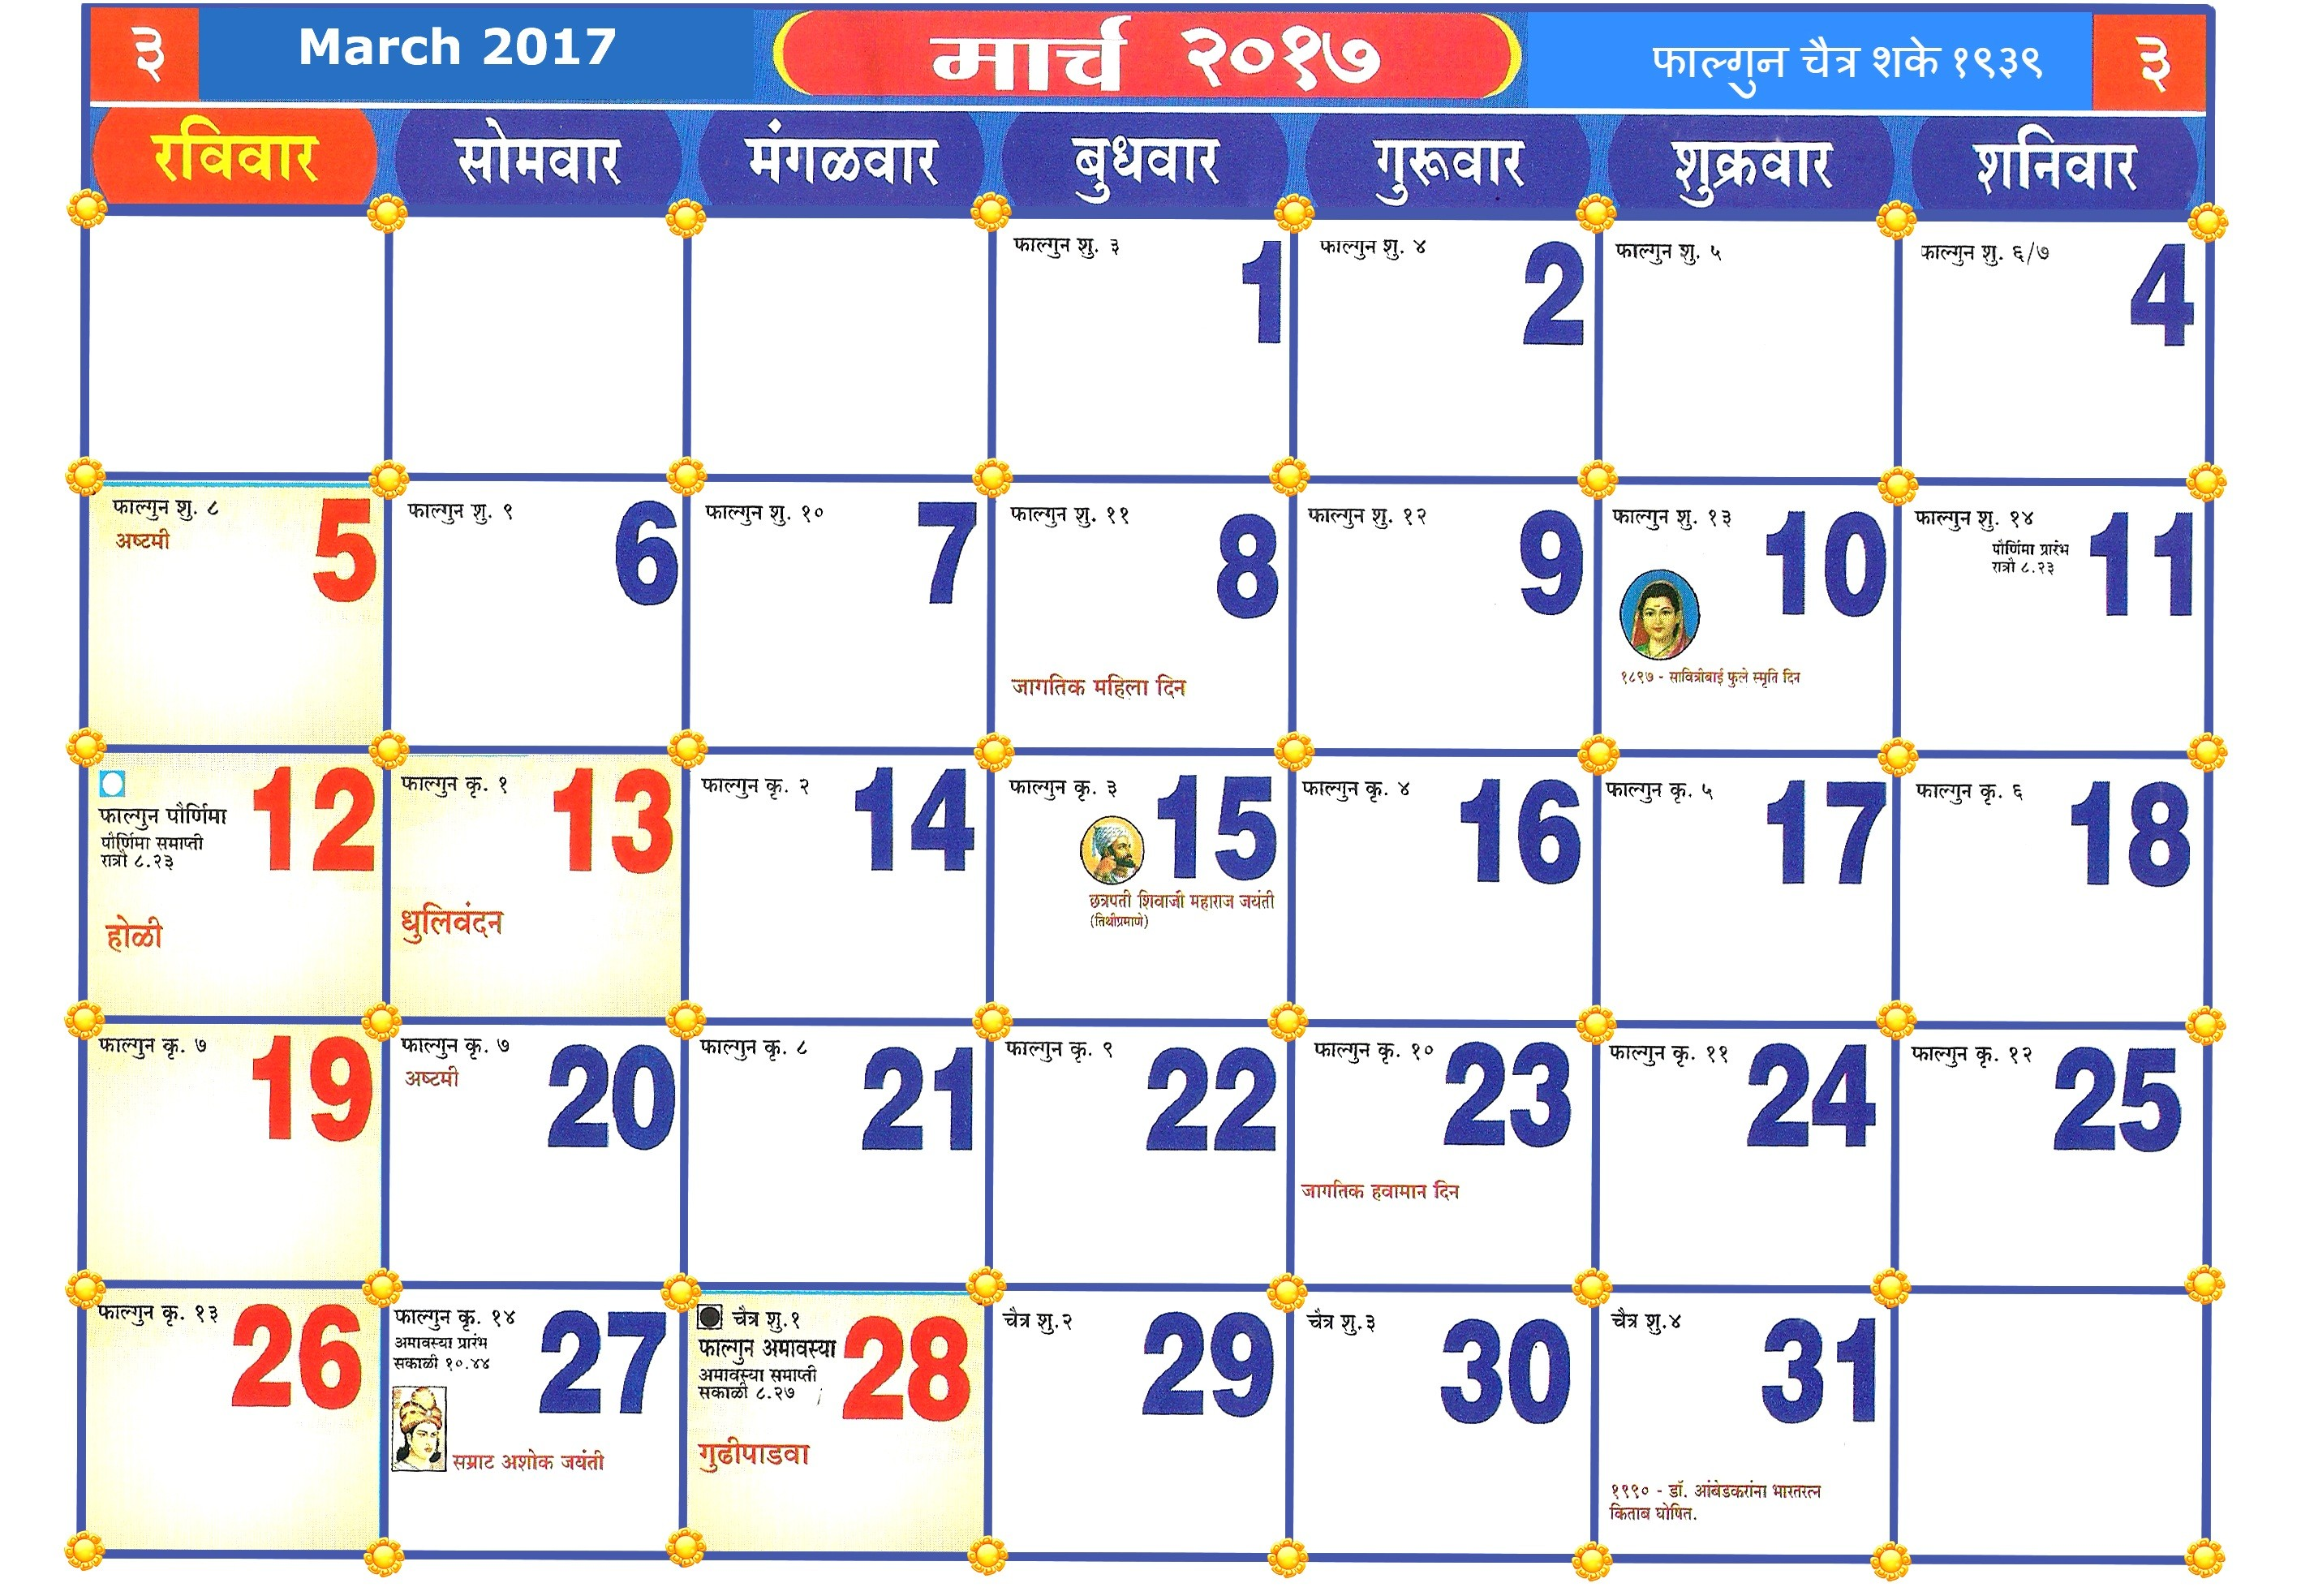 March 2018 Calendar Kalnirnay Más Reciente September 2016 Calendar Marathi T Of March 2018 Calendar Kalnirnay Más Recientes Kalender Vorlage Powerpoint 2017 Great Keynote Calendar Template